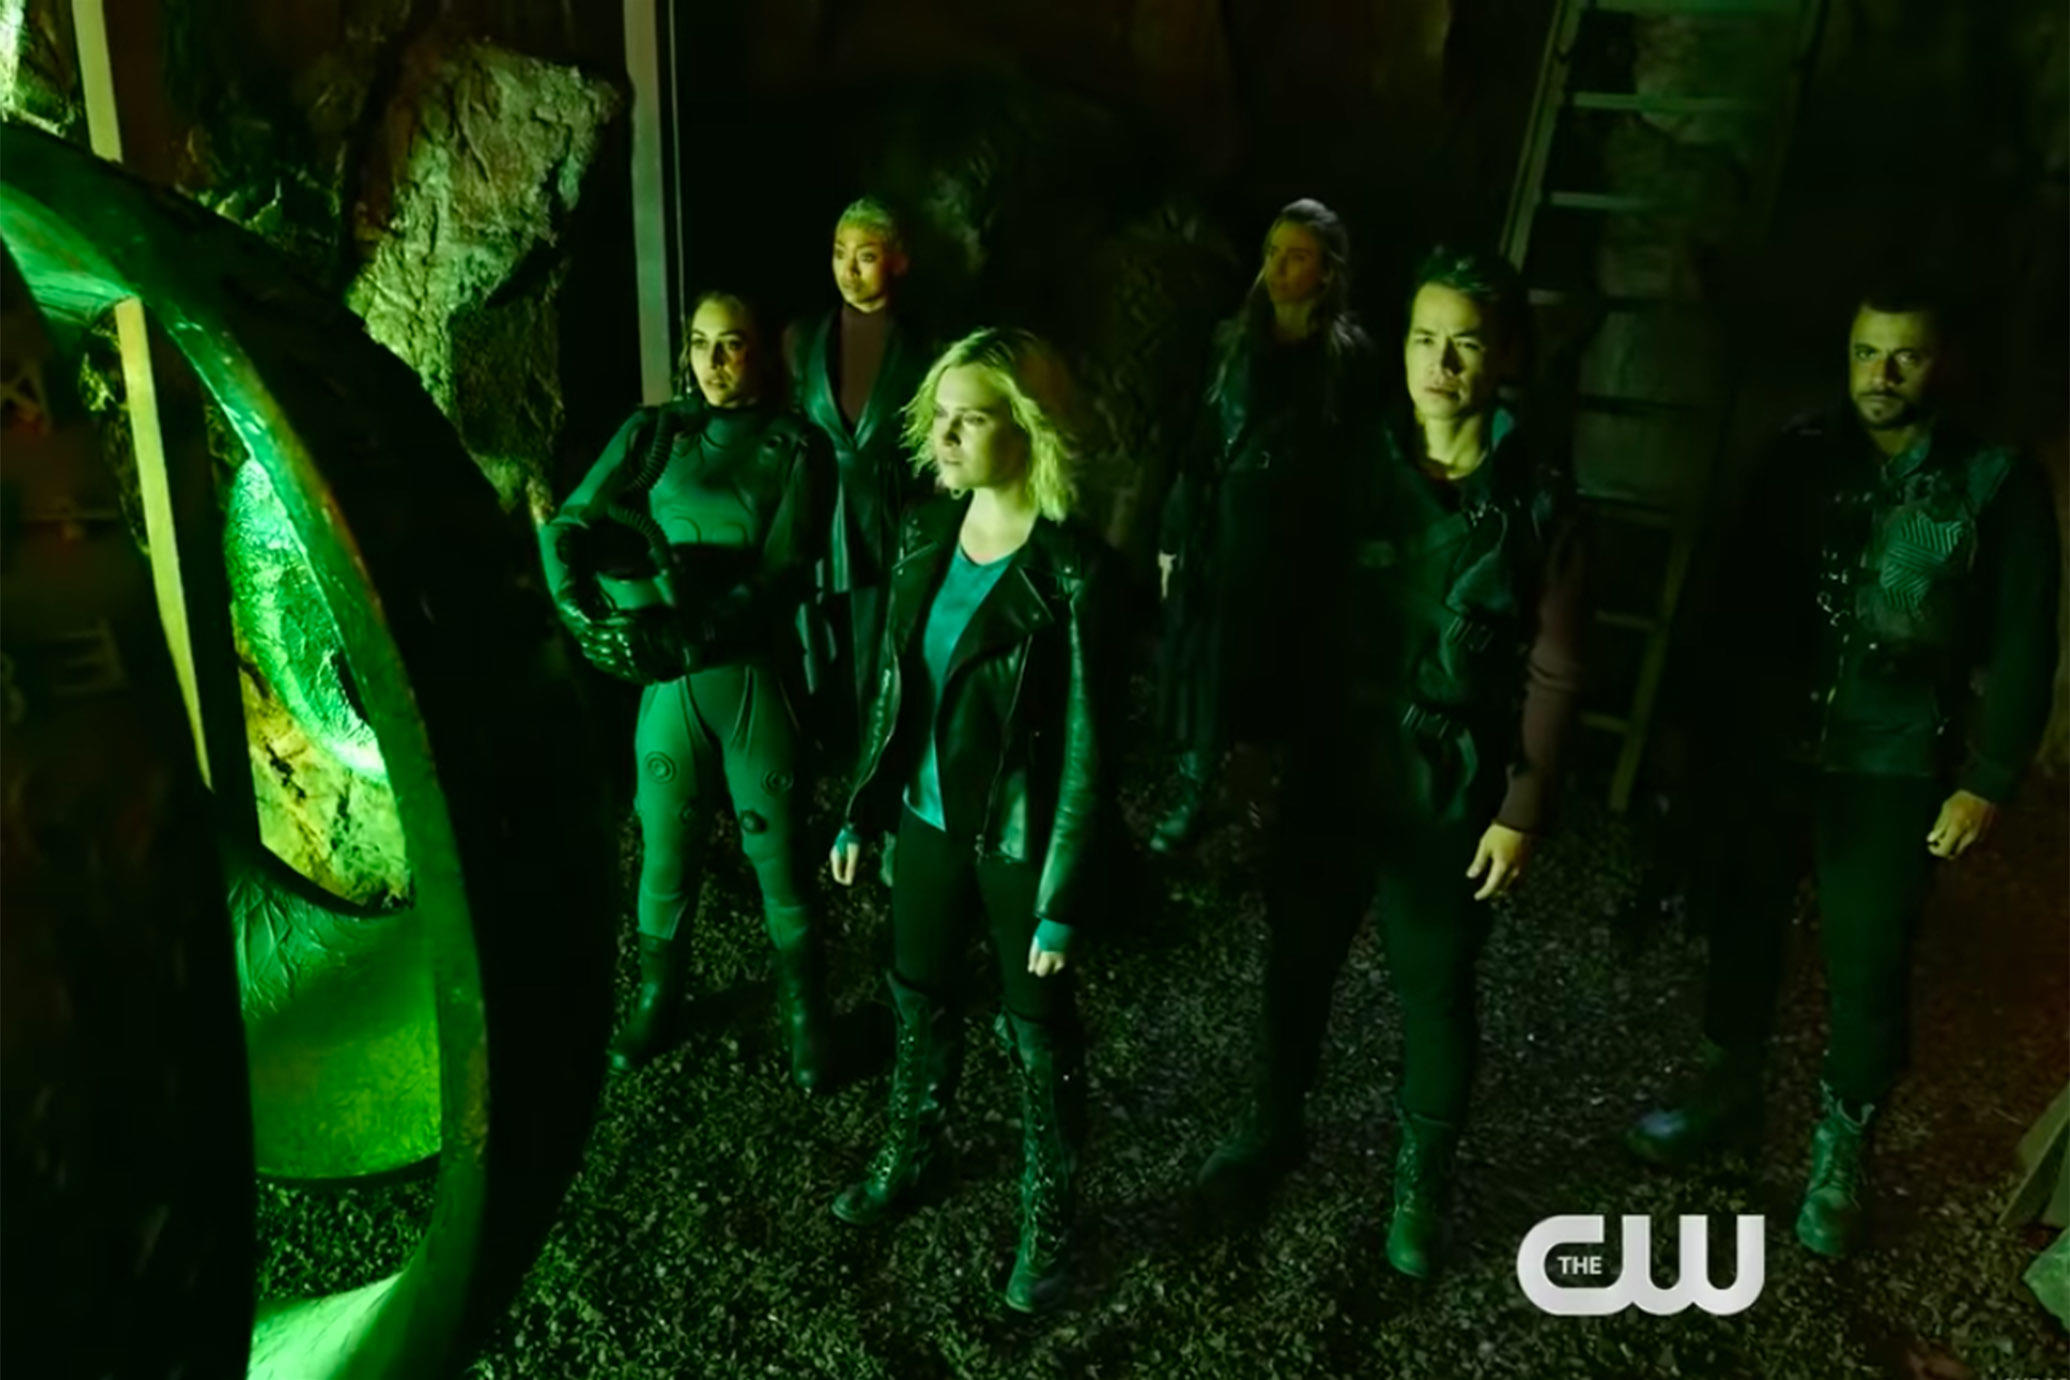 The 100/The CW